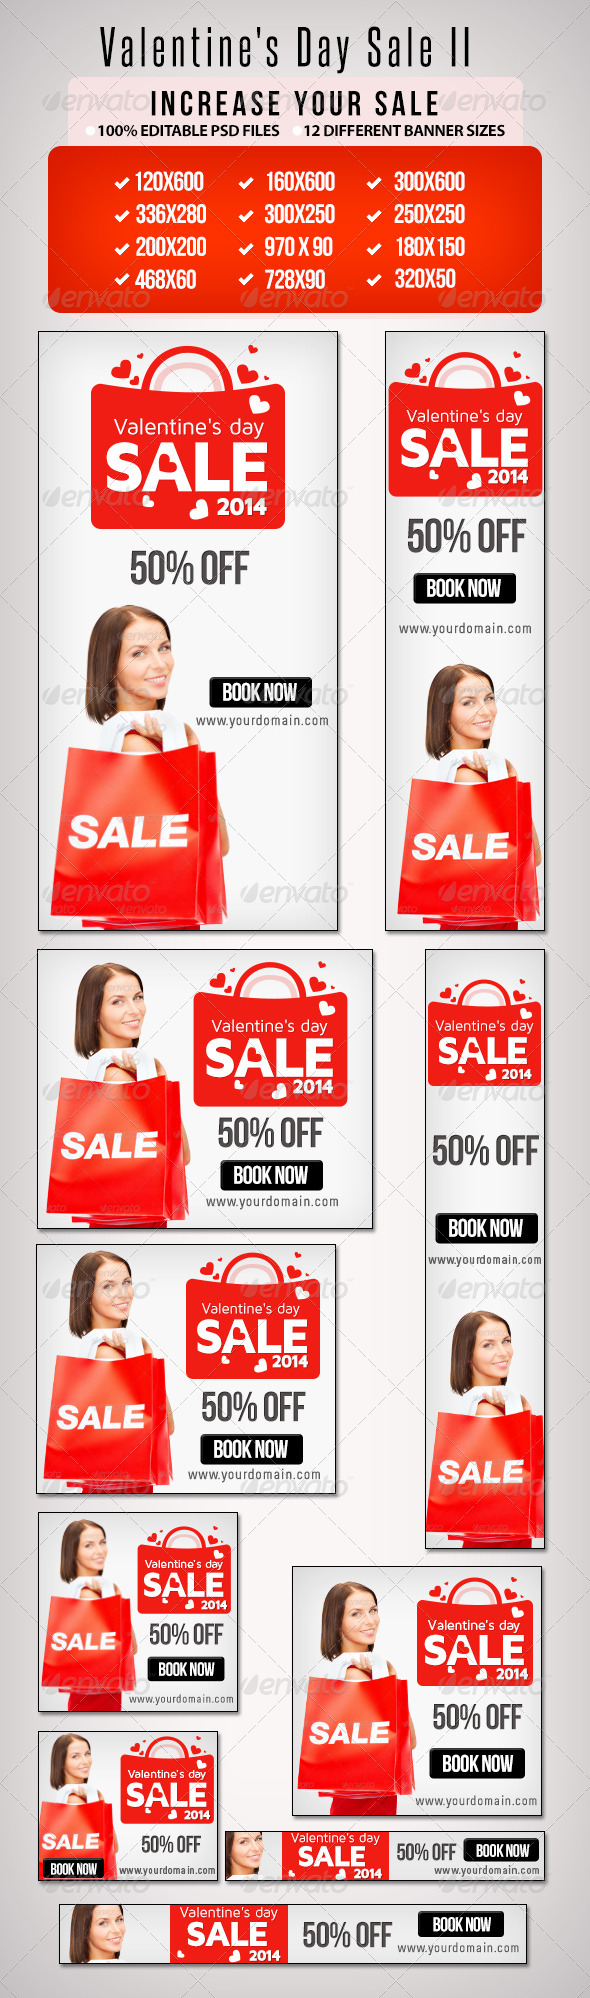 GraphicRiver Valentine s Day Sale II 6702031